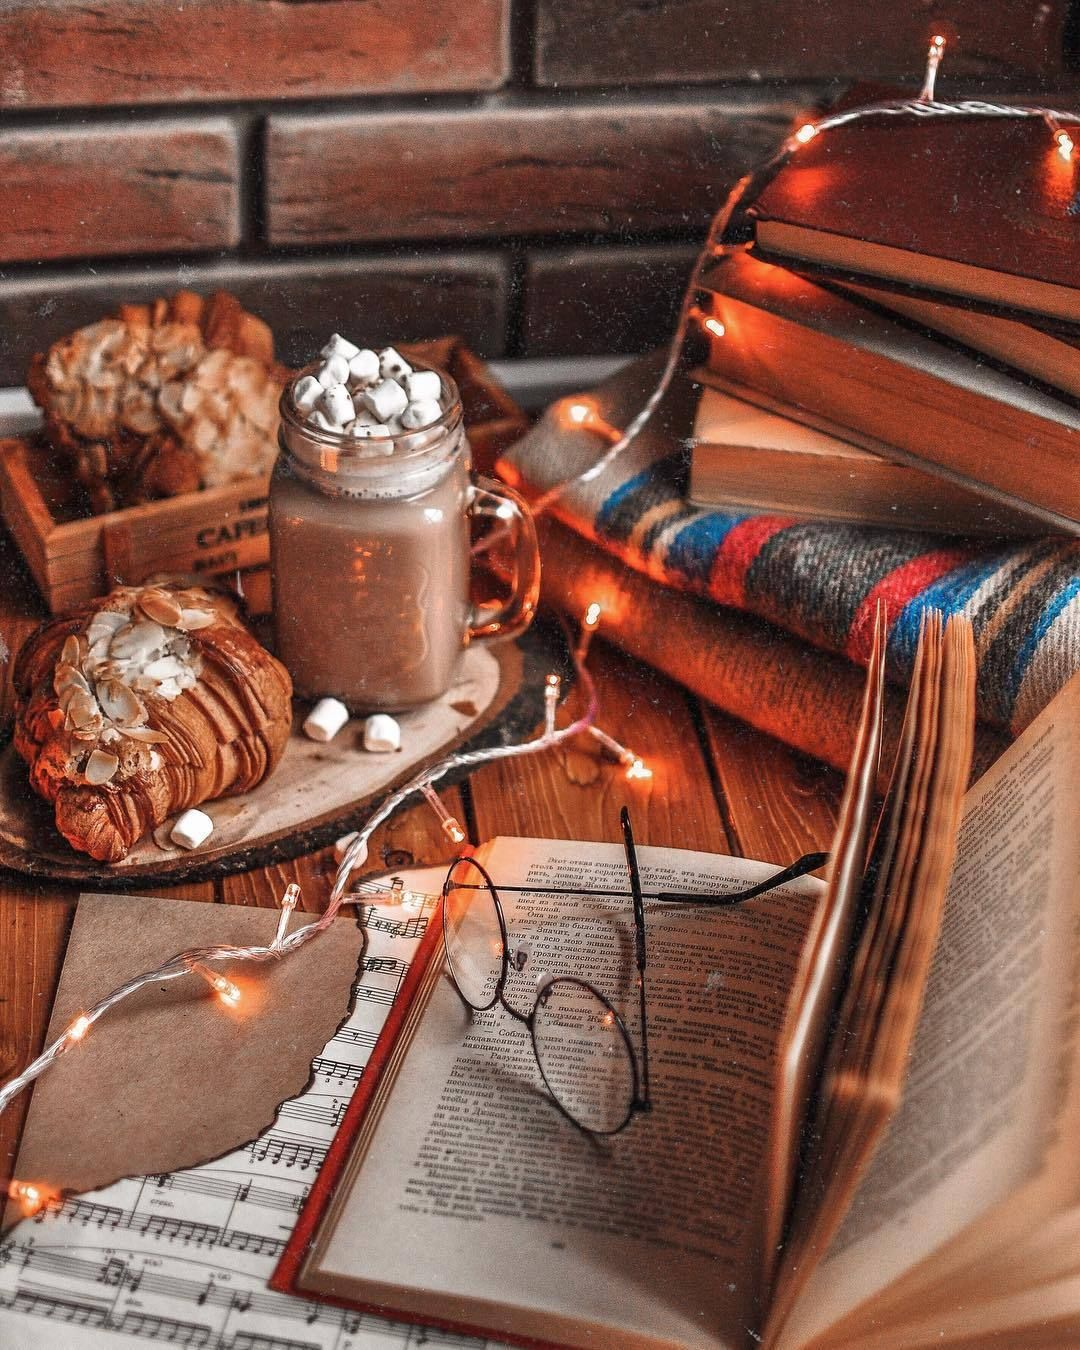 Autumn Cozy | Autumn aesthetic tumblr, Autumn cozy, Autumn ...